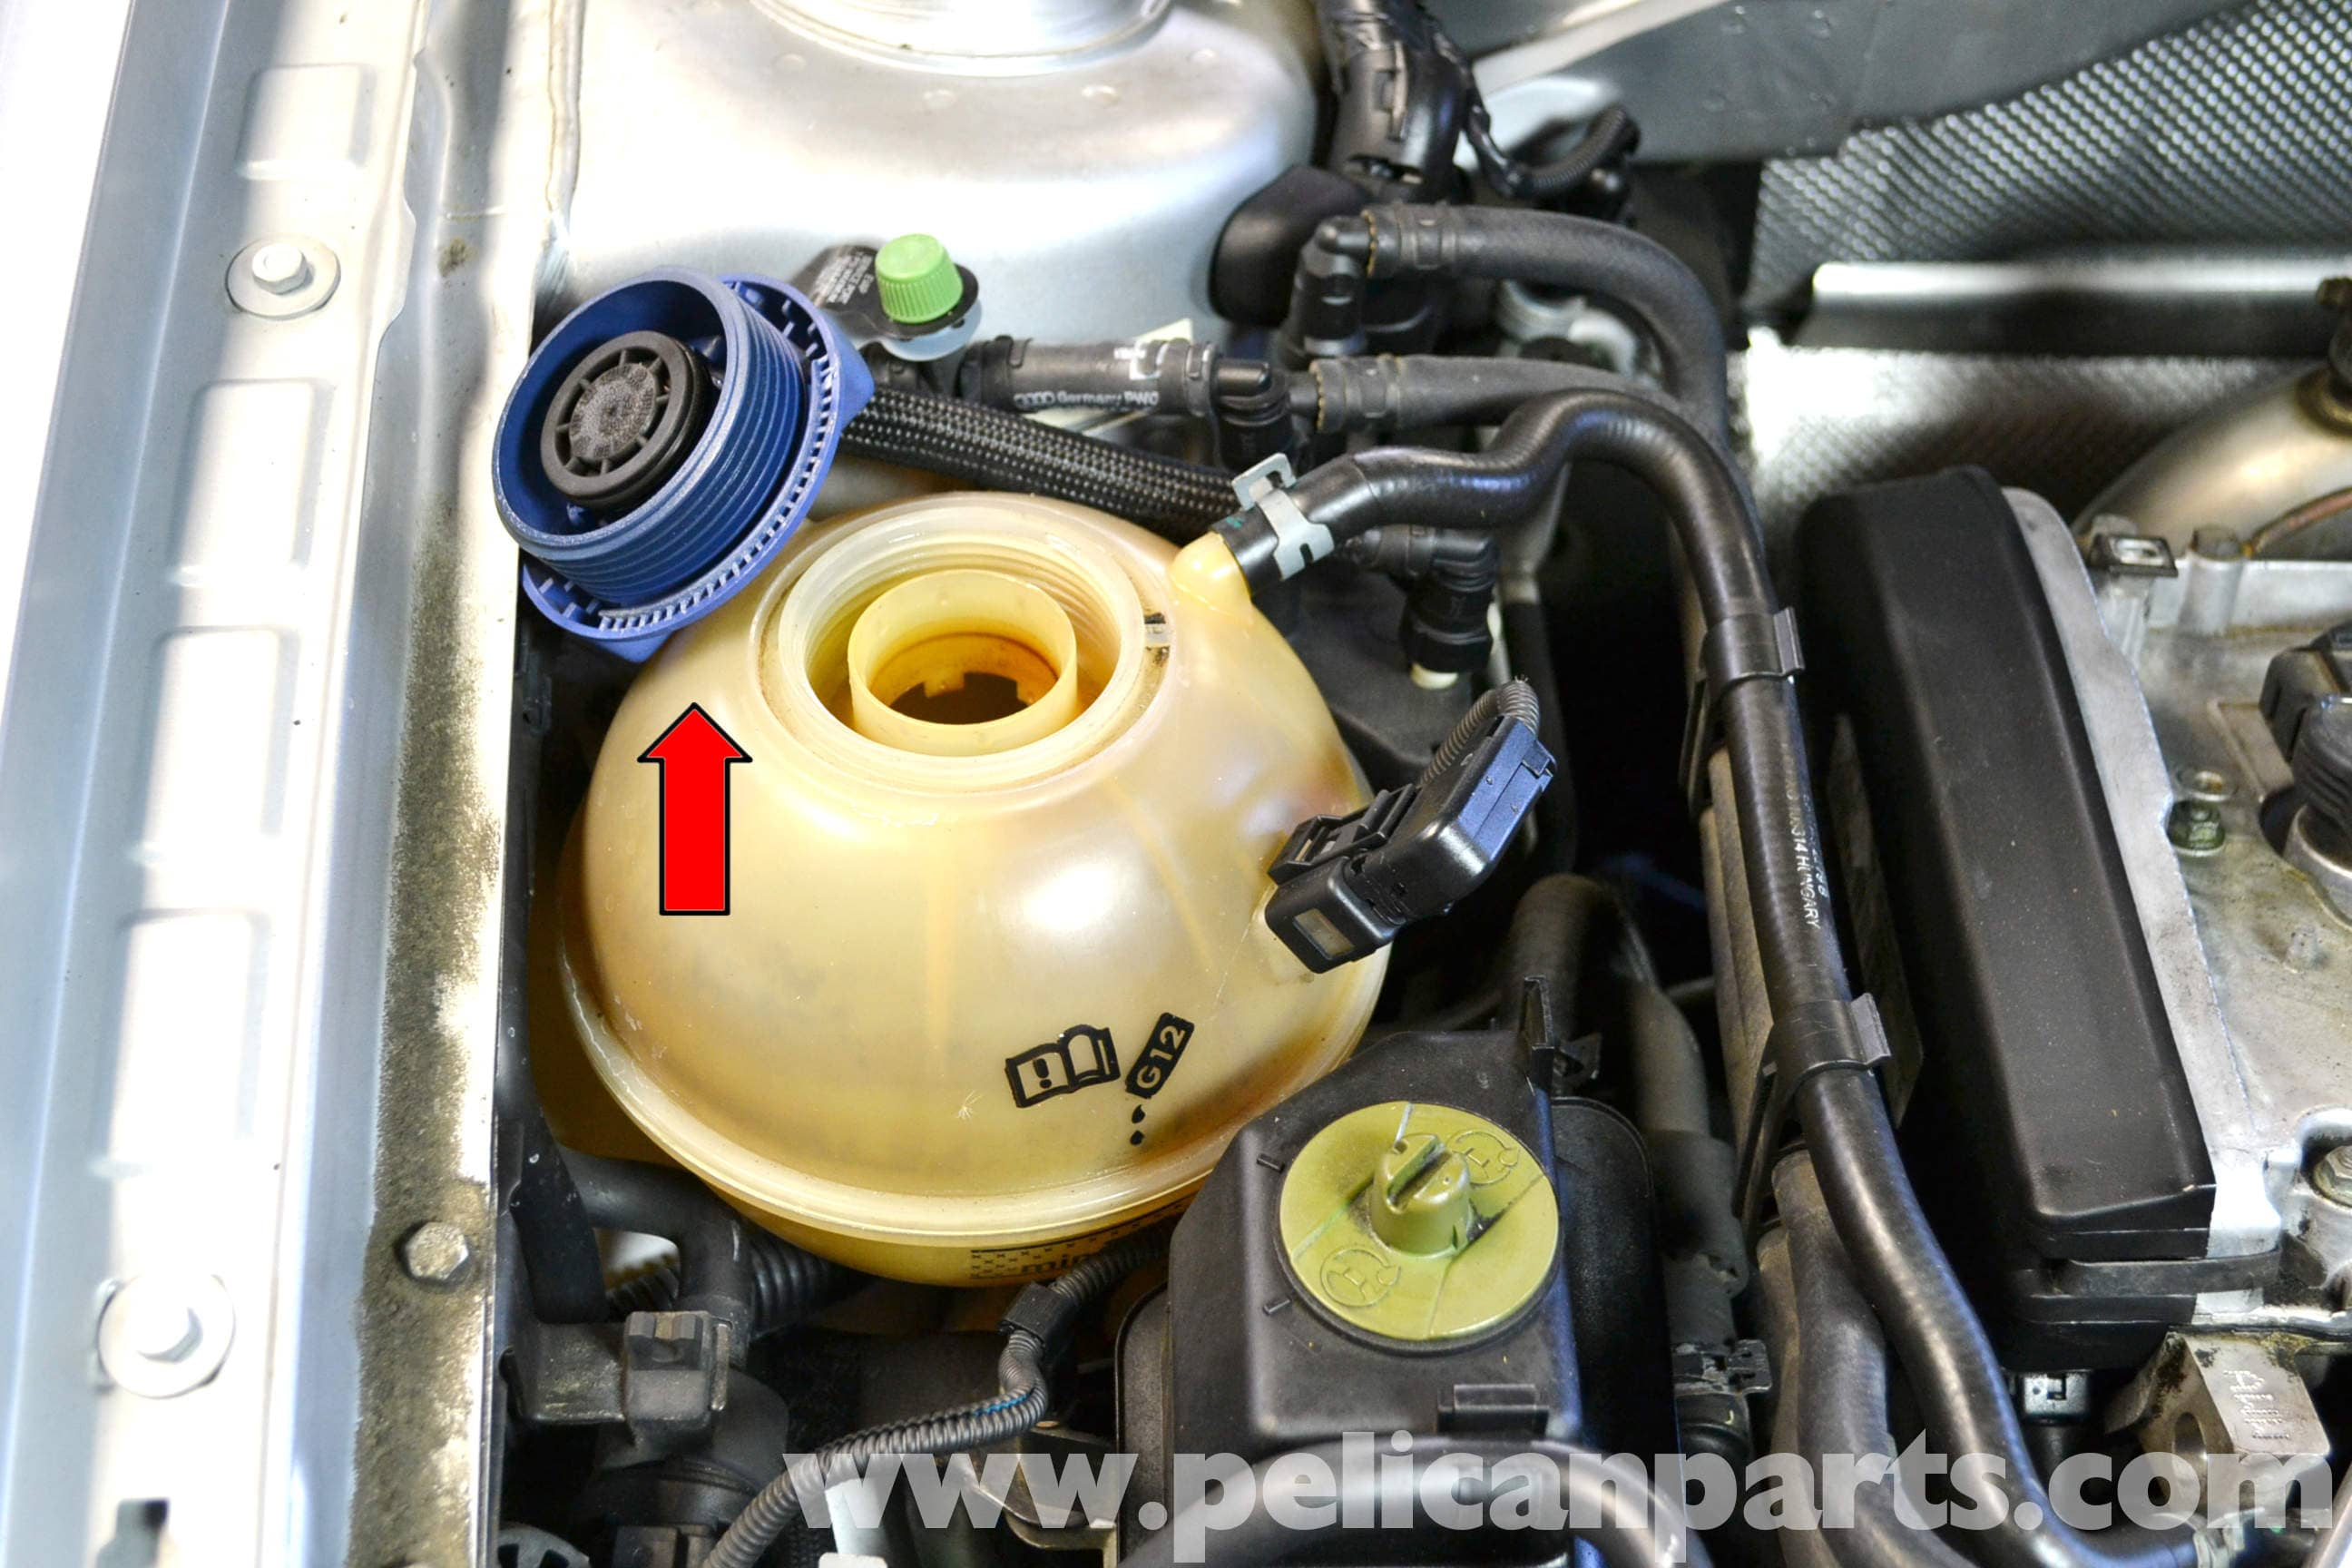 Volkswagen Golf Gti Mk Iv Coolant Flush And Replacement 1999 2005 2010 Jetta Fluids Large Image Extra